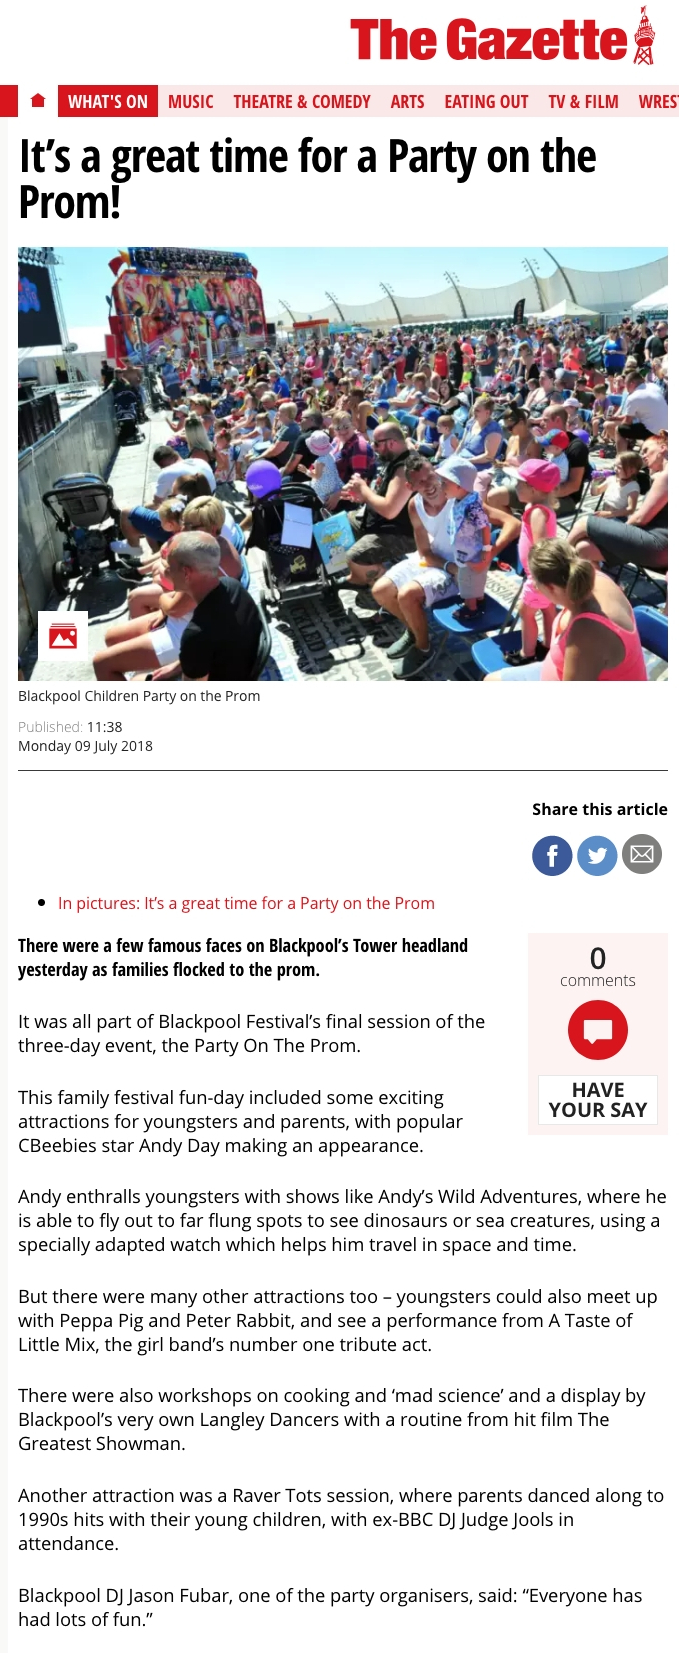 screenshot-www.blackpoolgazette.co.uk-2018.08.22-08-34-44